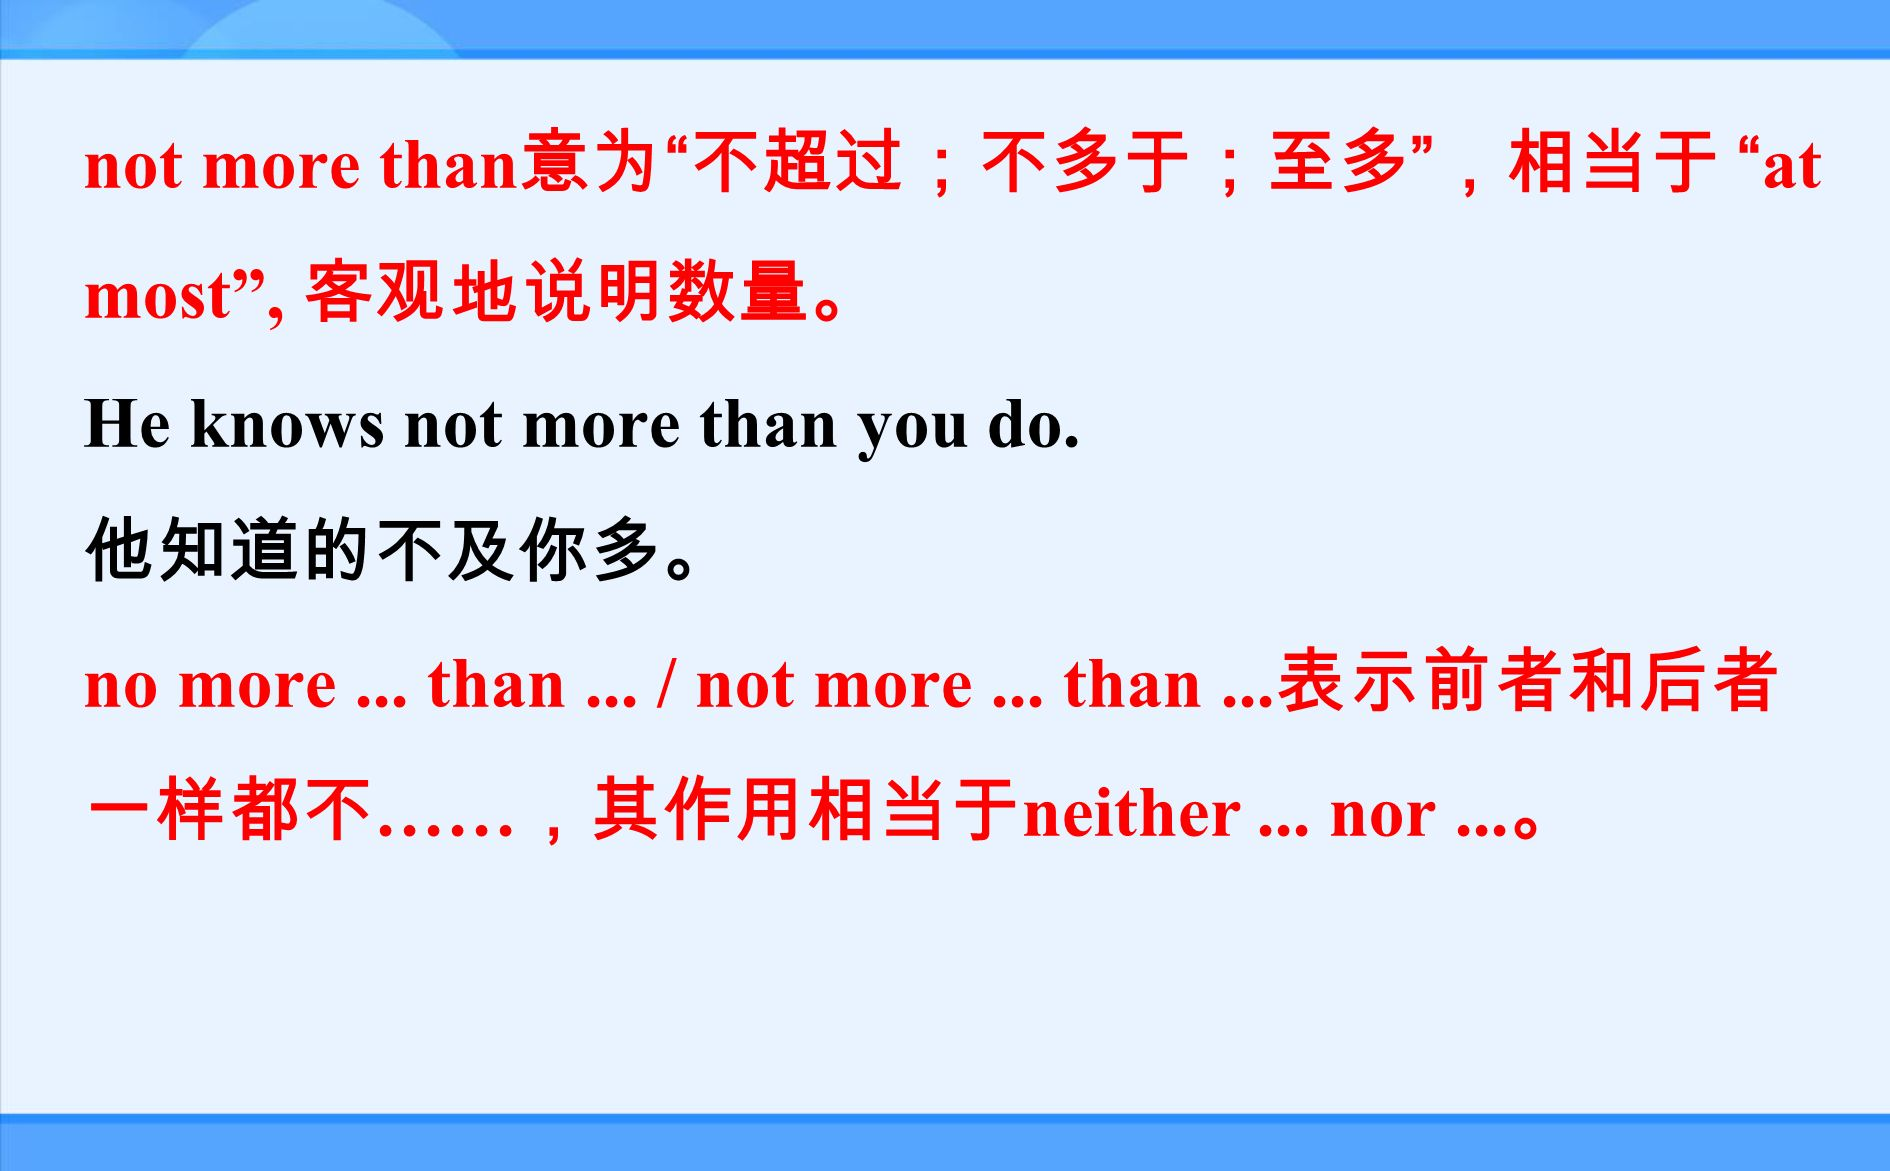 特别提示 no more than 与 not more than ; no more...than...